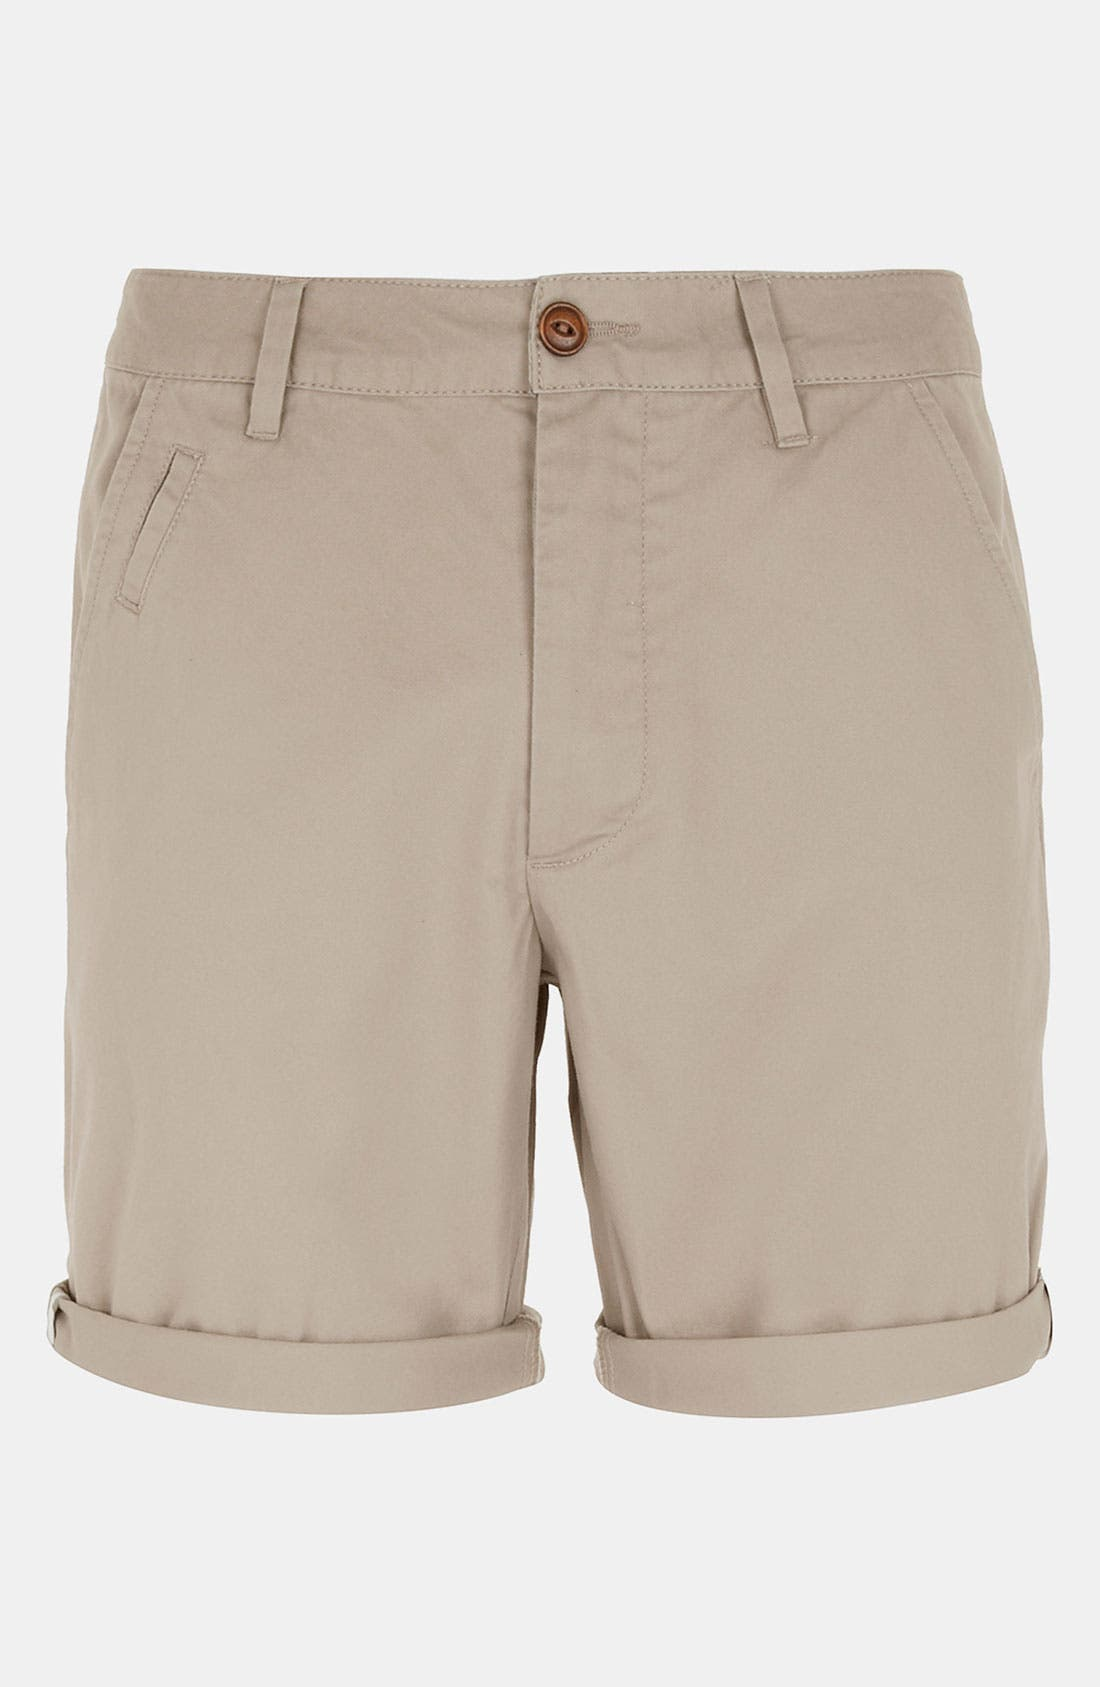 Alternate Image 1 Selected - Topman Cotton Shorts